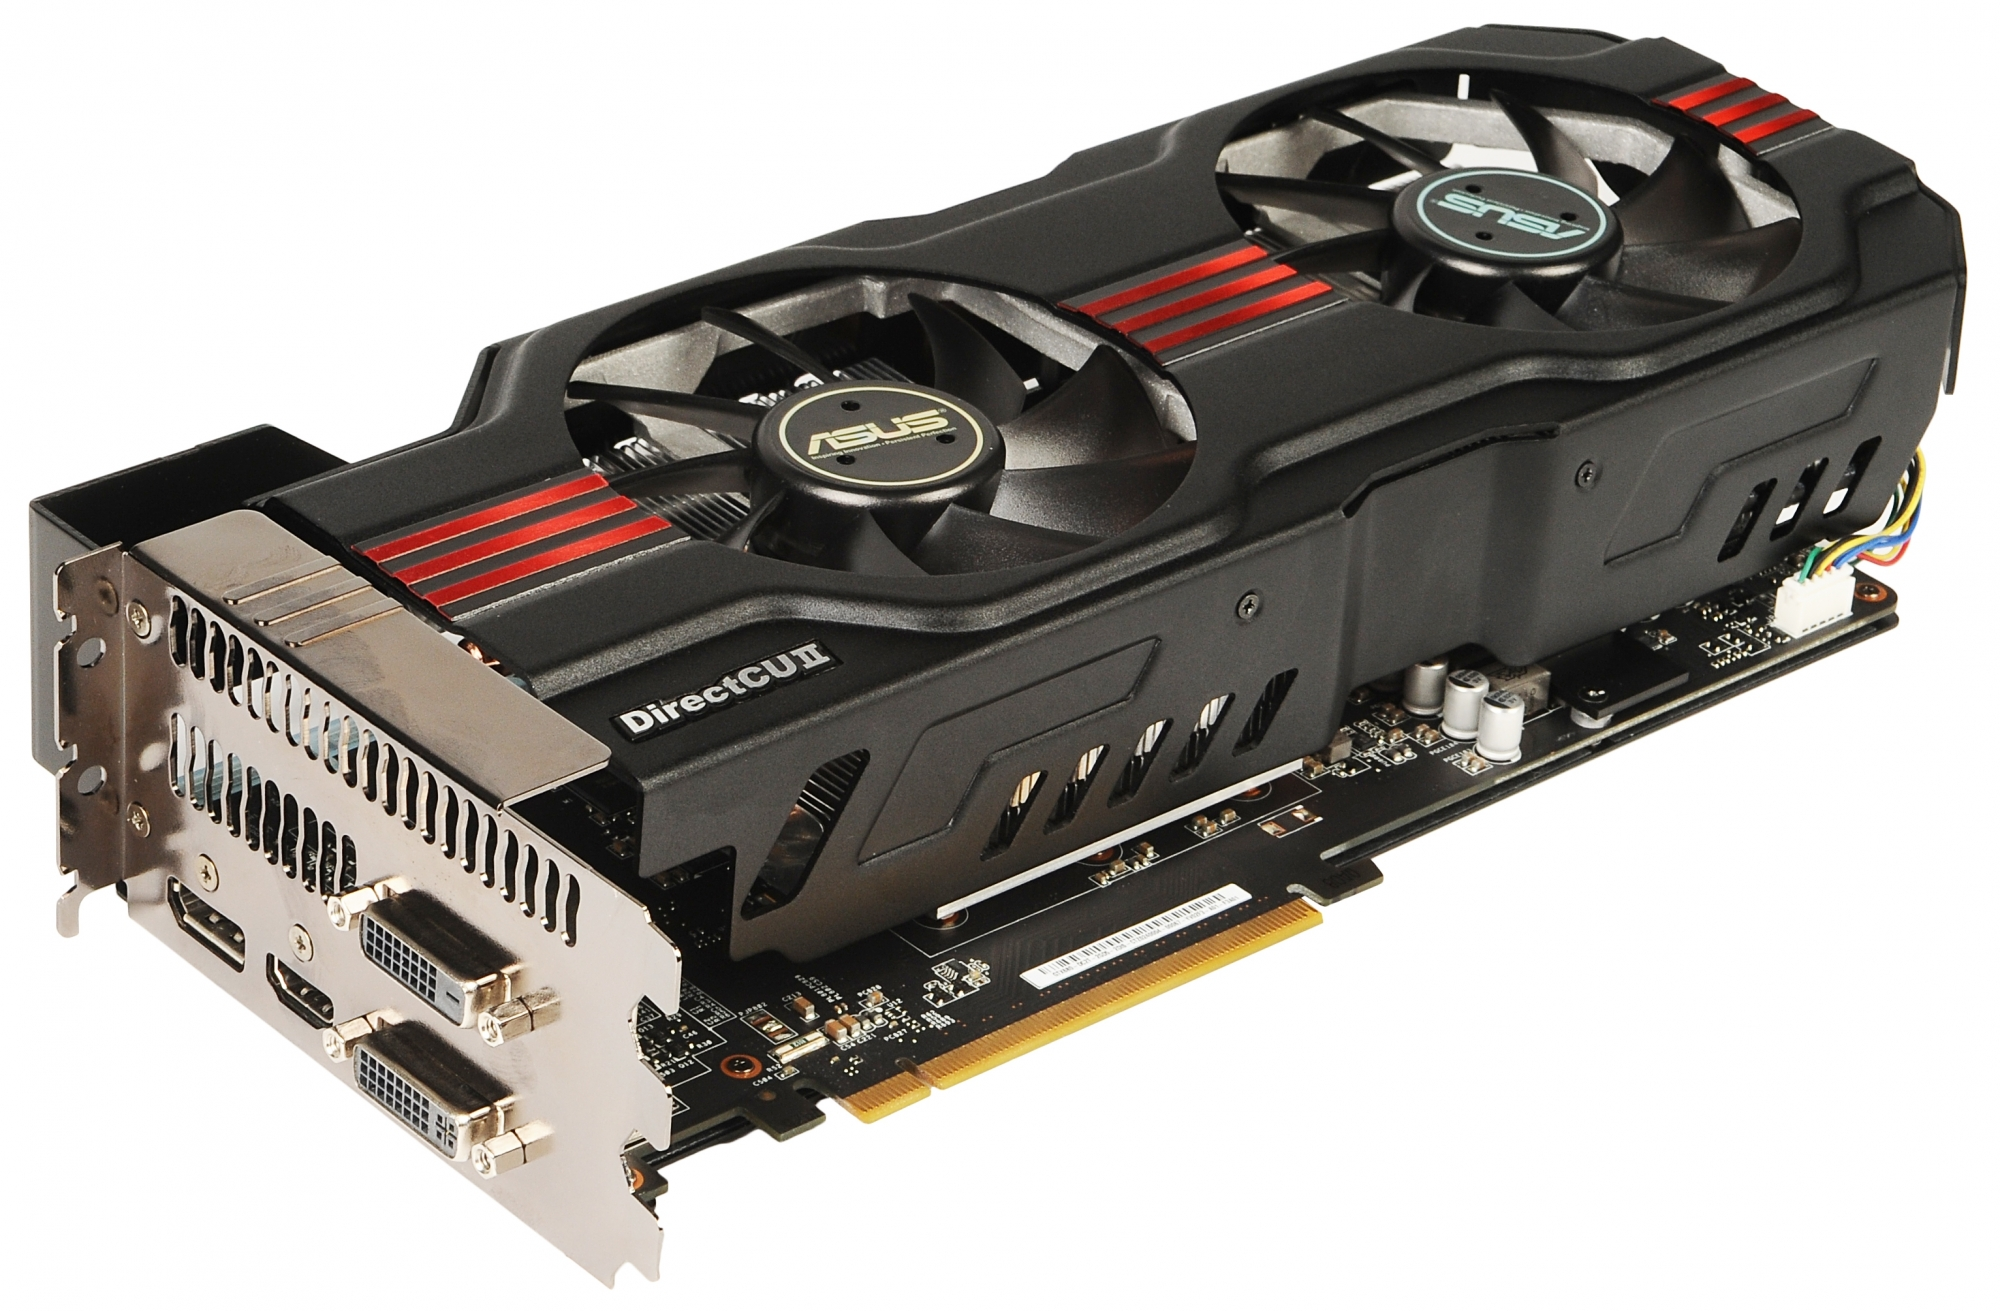 ASUS GTX680-DC2T-2GD5 GRAPHICS CARD WINDOWS 8.1 DRIVER DOWNLOAD